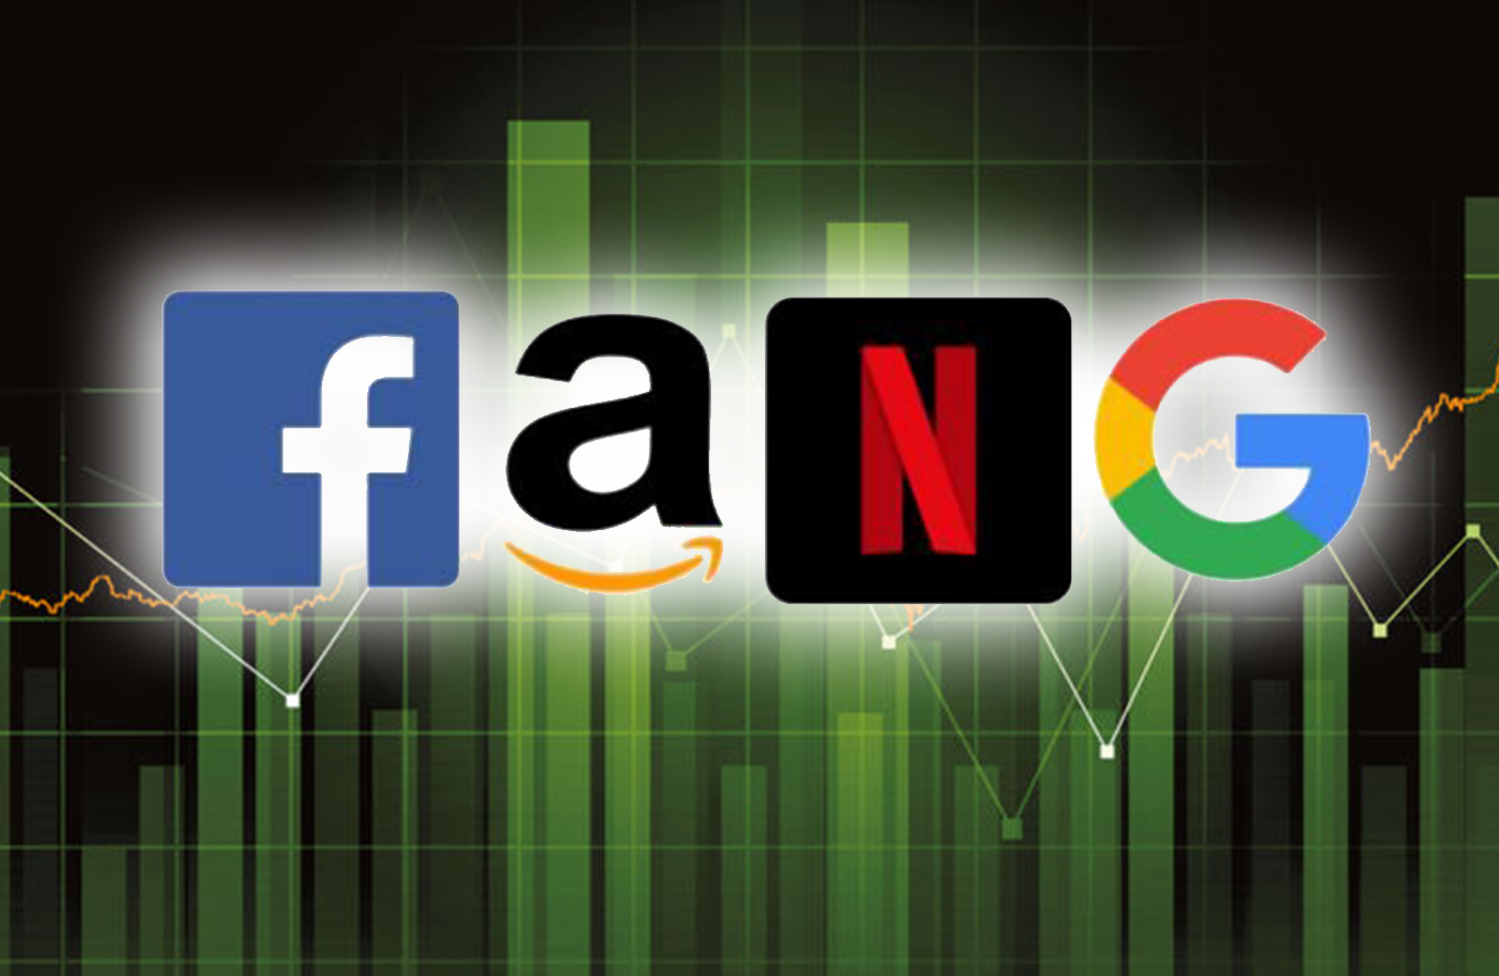 What are FANG stocks